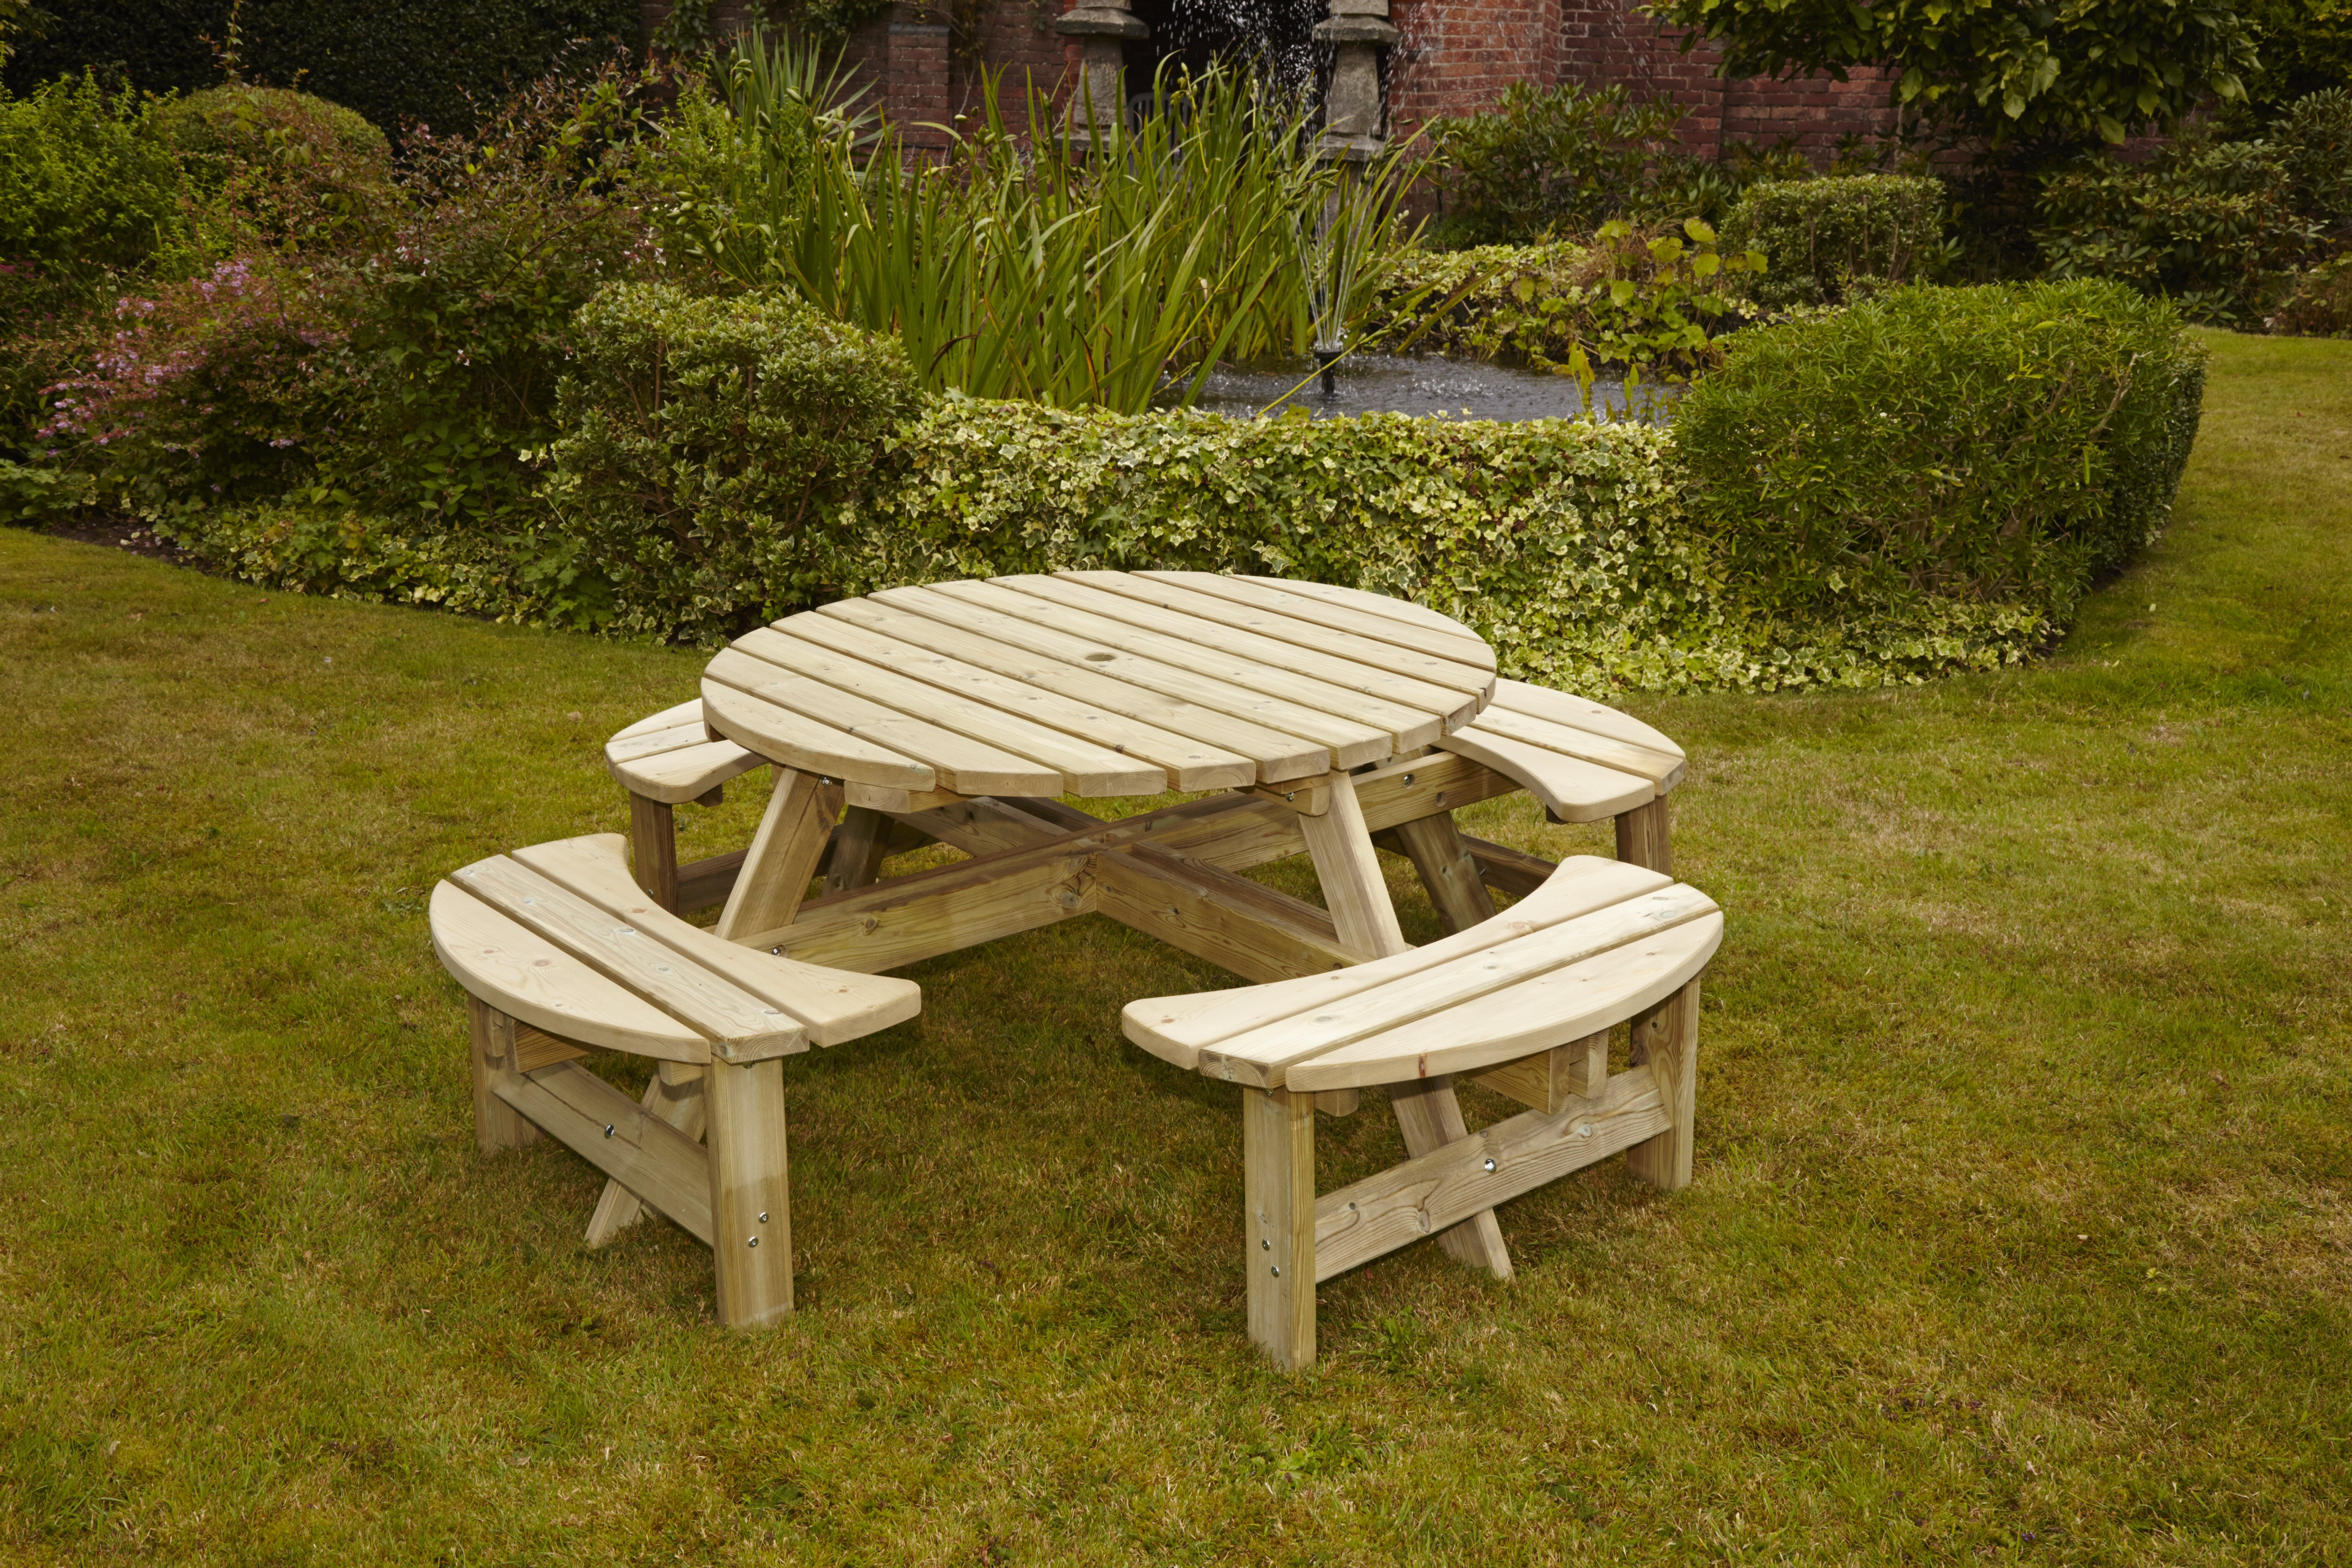 Garden Product News Archives - Simply Wood